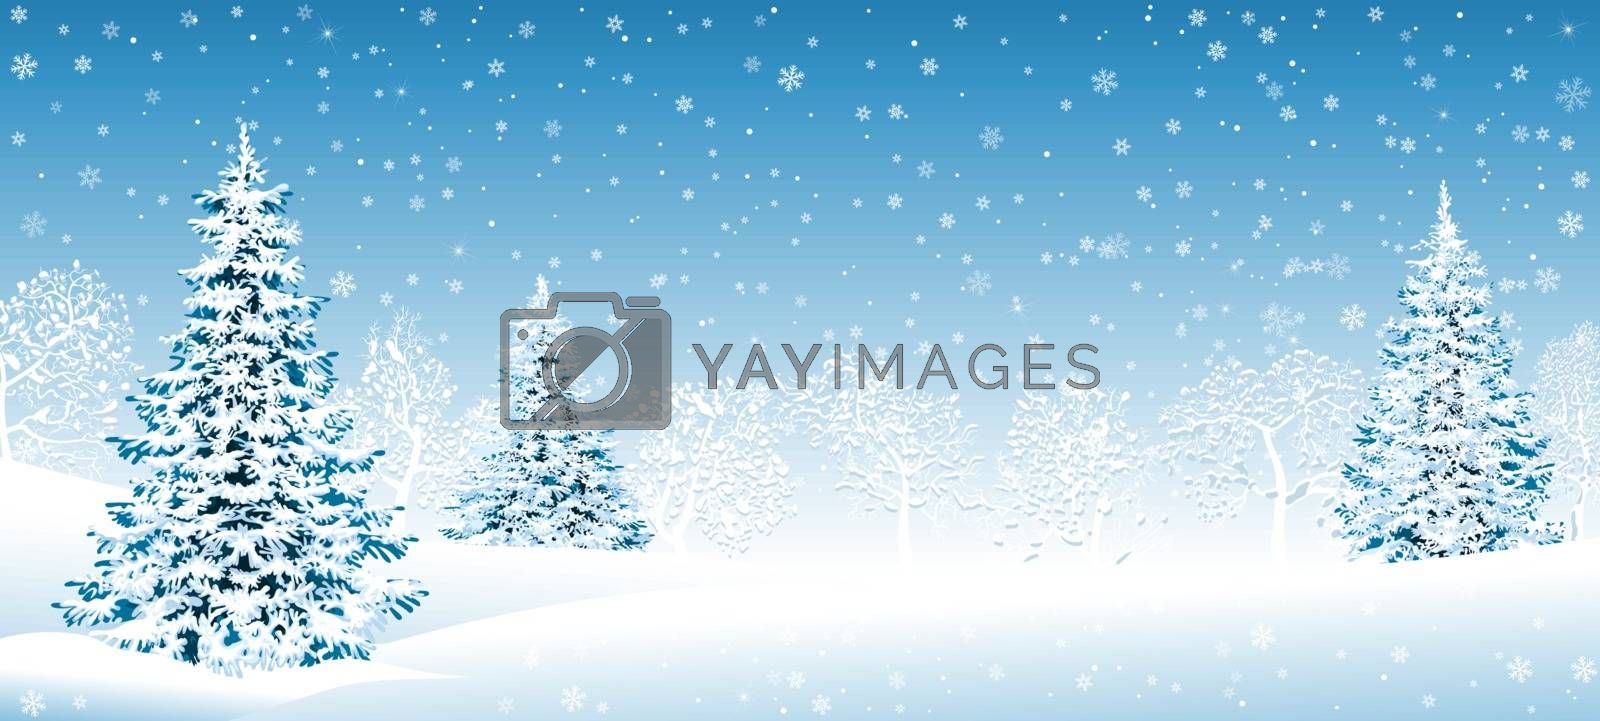 Snowy forest Christmas winter background by liolle